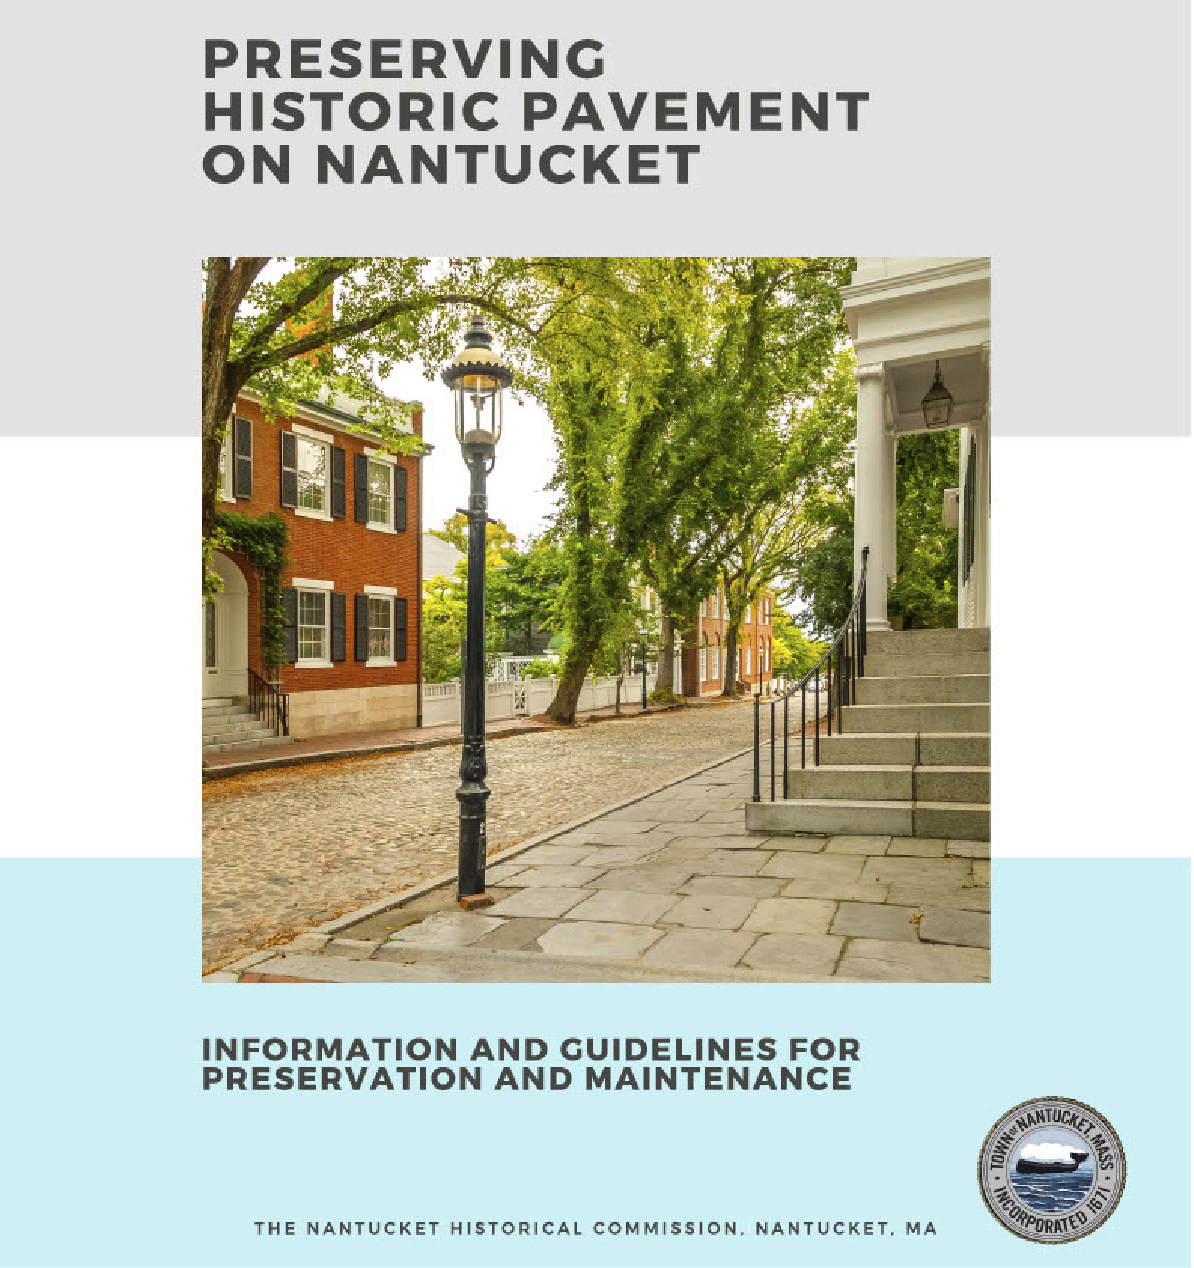 Historic Pavement on Nantucket - Information and Guidelines